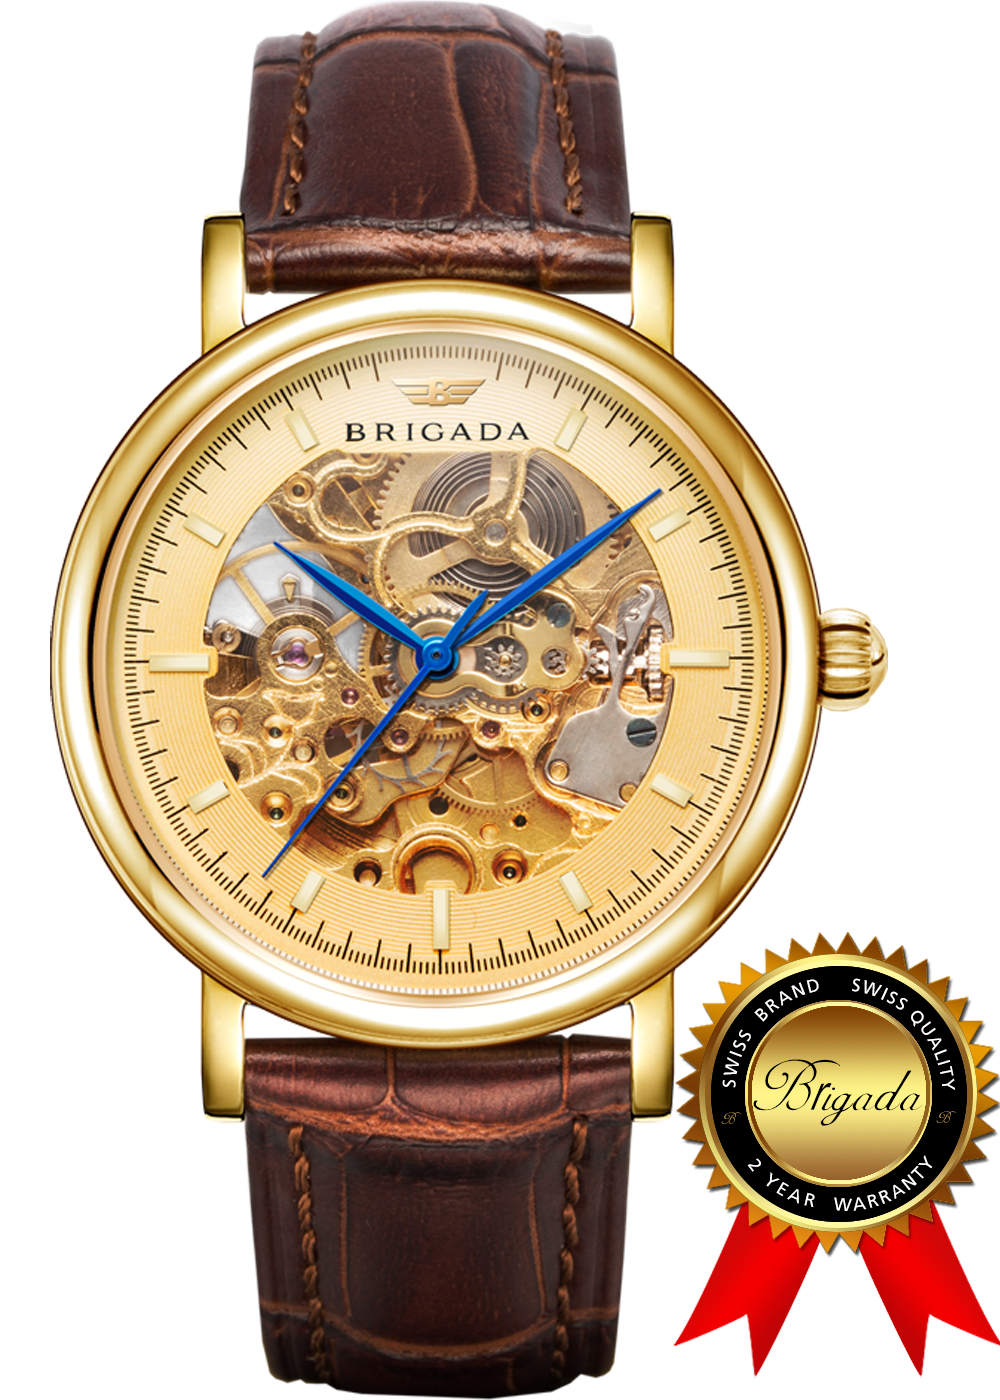 BRIGADA Swiss Watches Luxury Gold Waterproof Watches for Men, Nice Automatic Hollow Mechanical Men's Watch